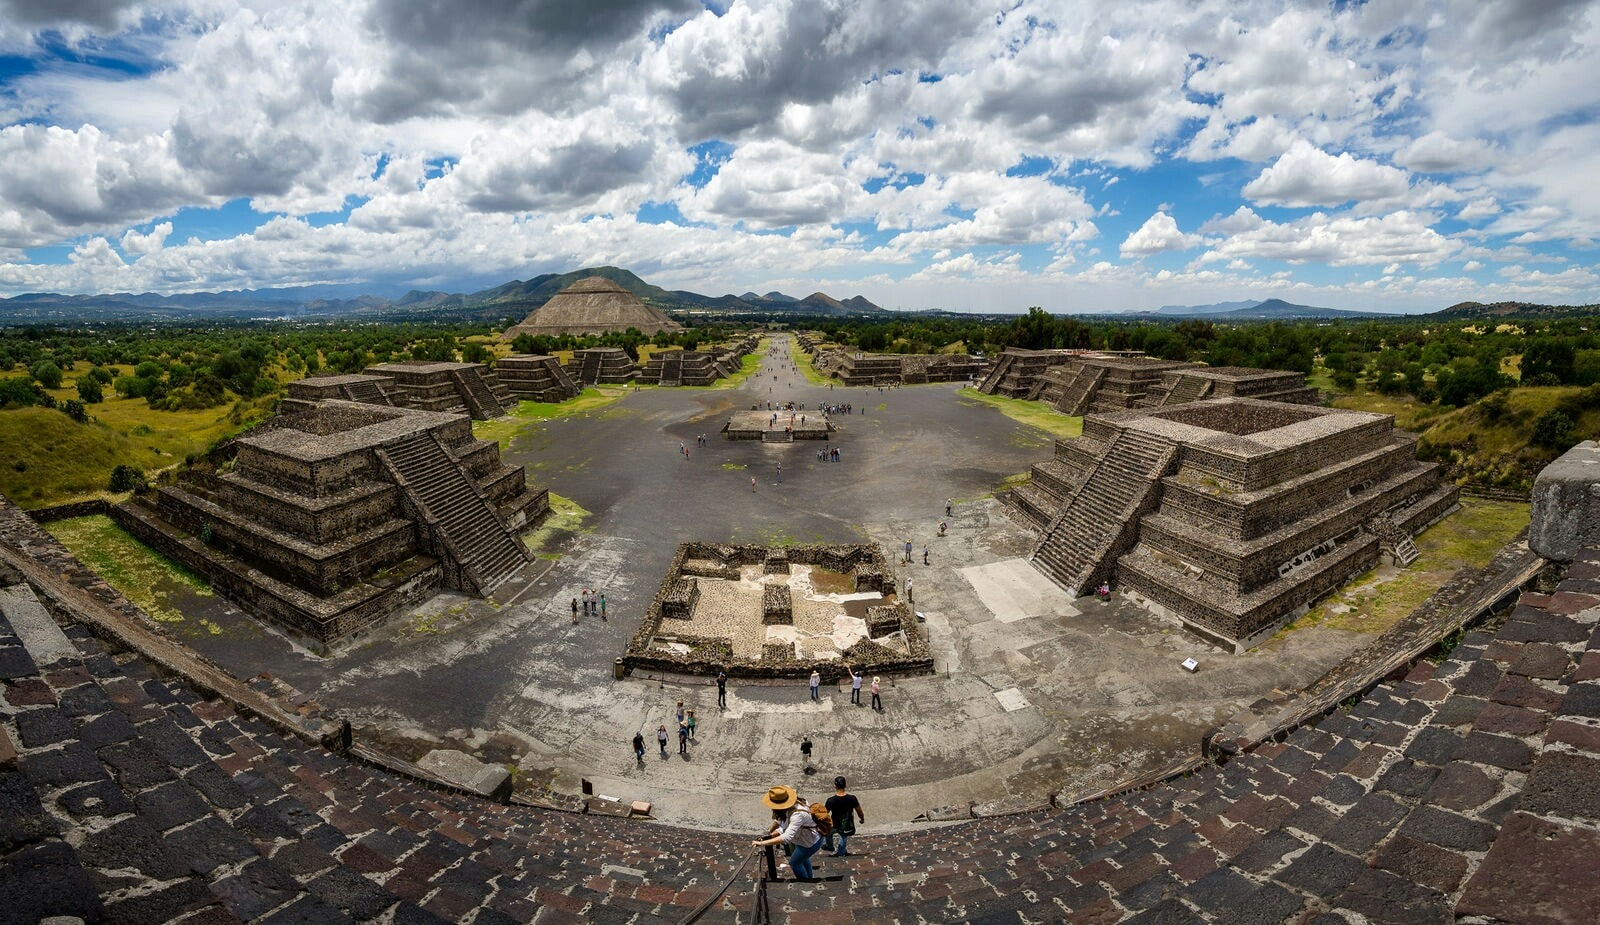 Pyramids of Teotihuacan is one of the best places to visit in Mexico City